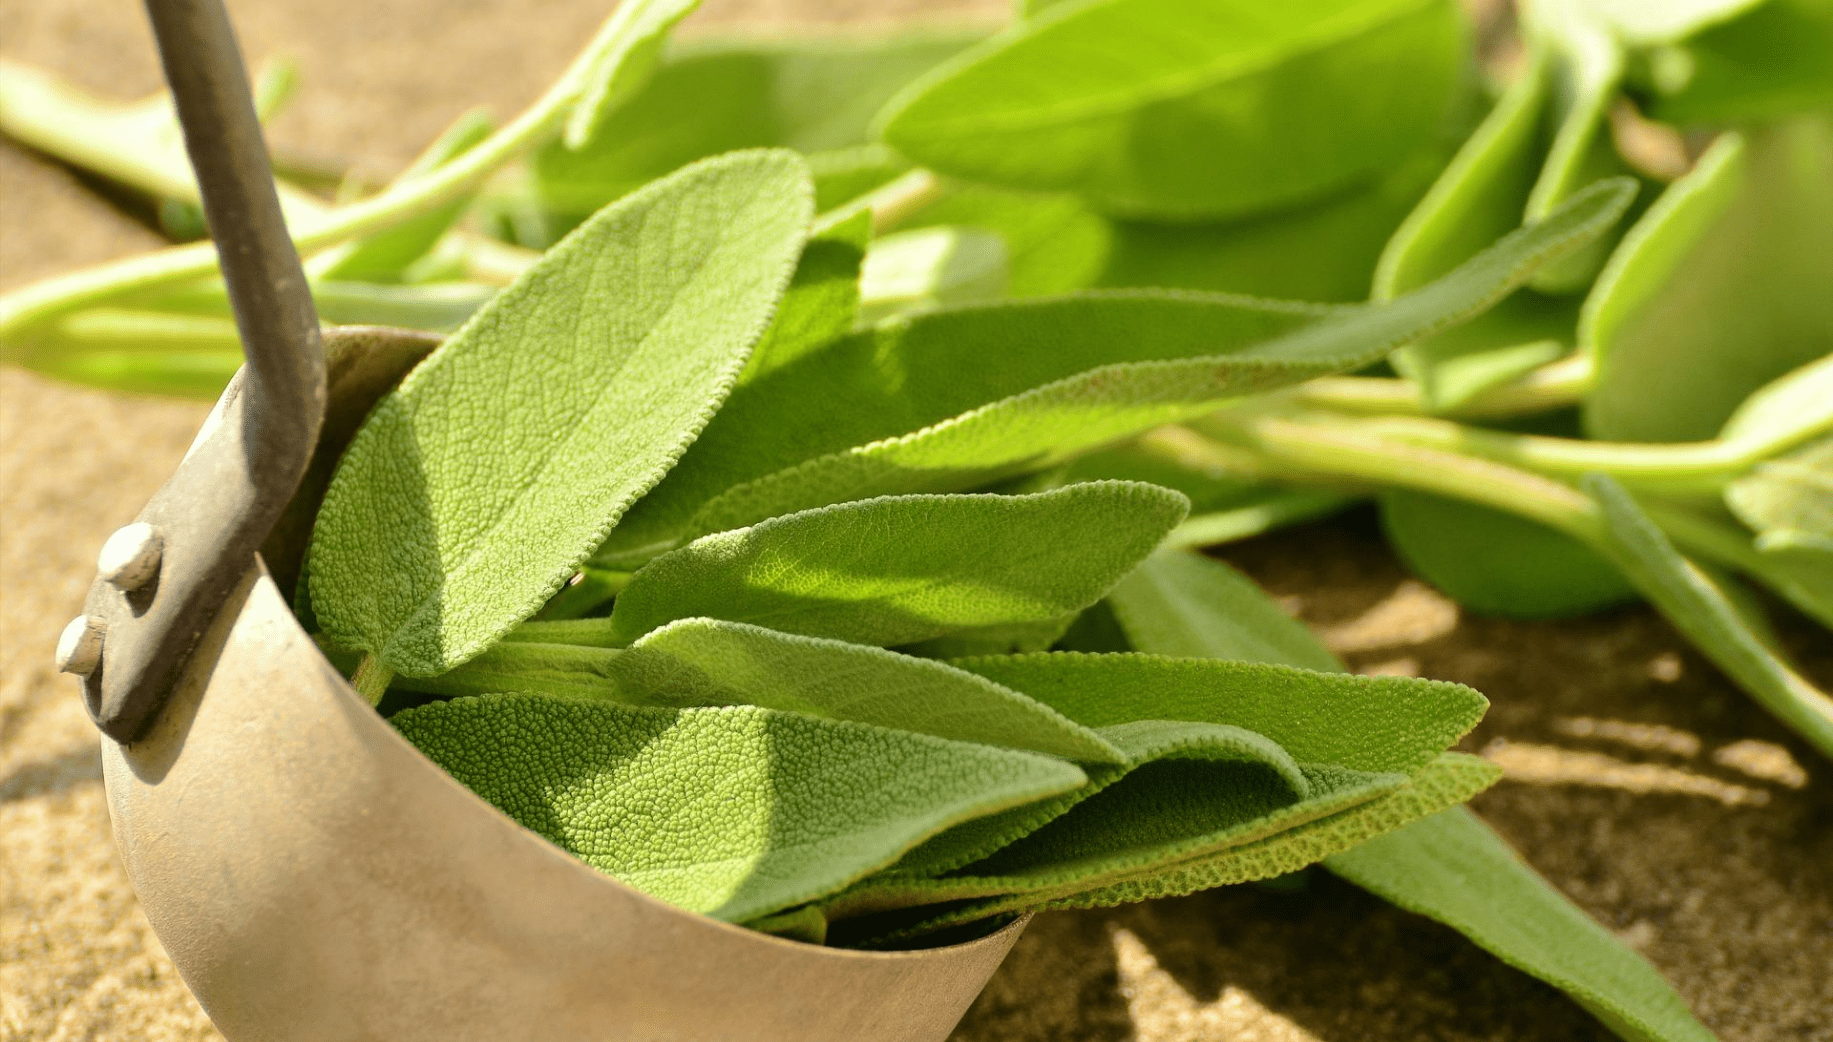 Sage plant from Meghalaya